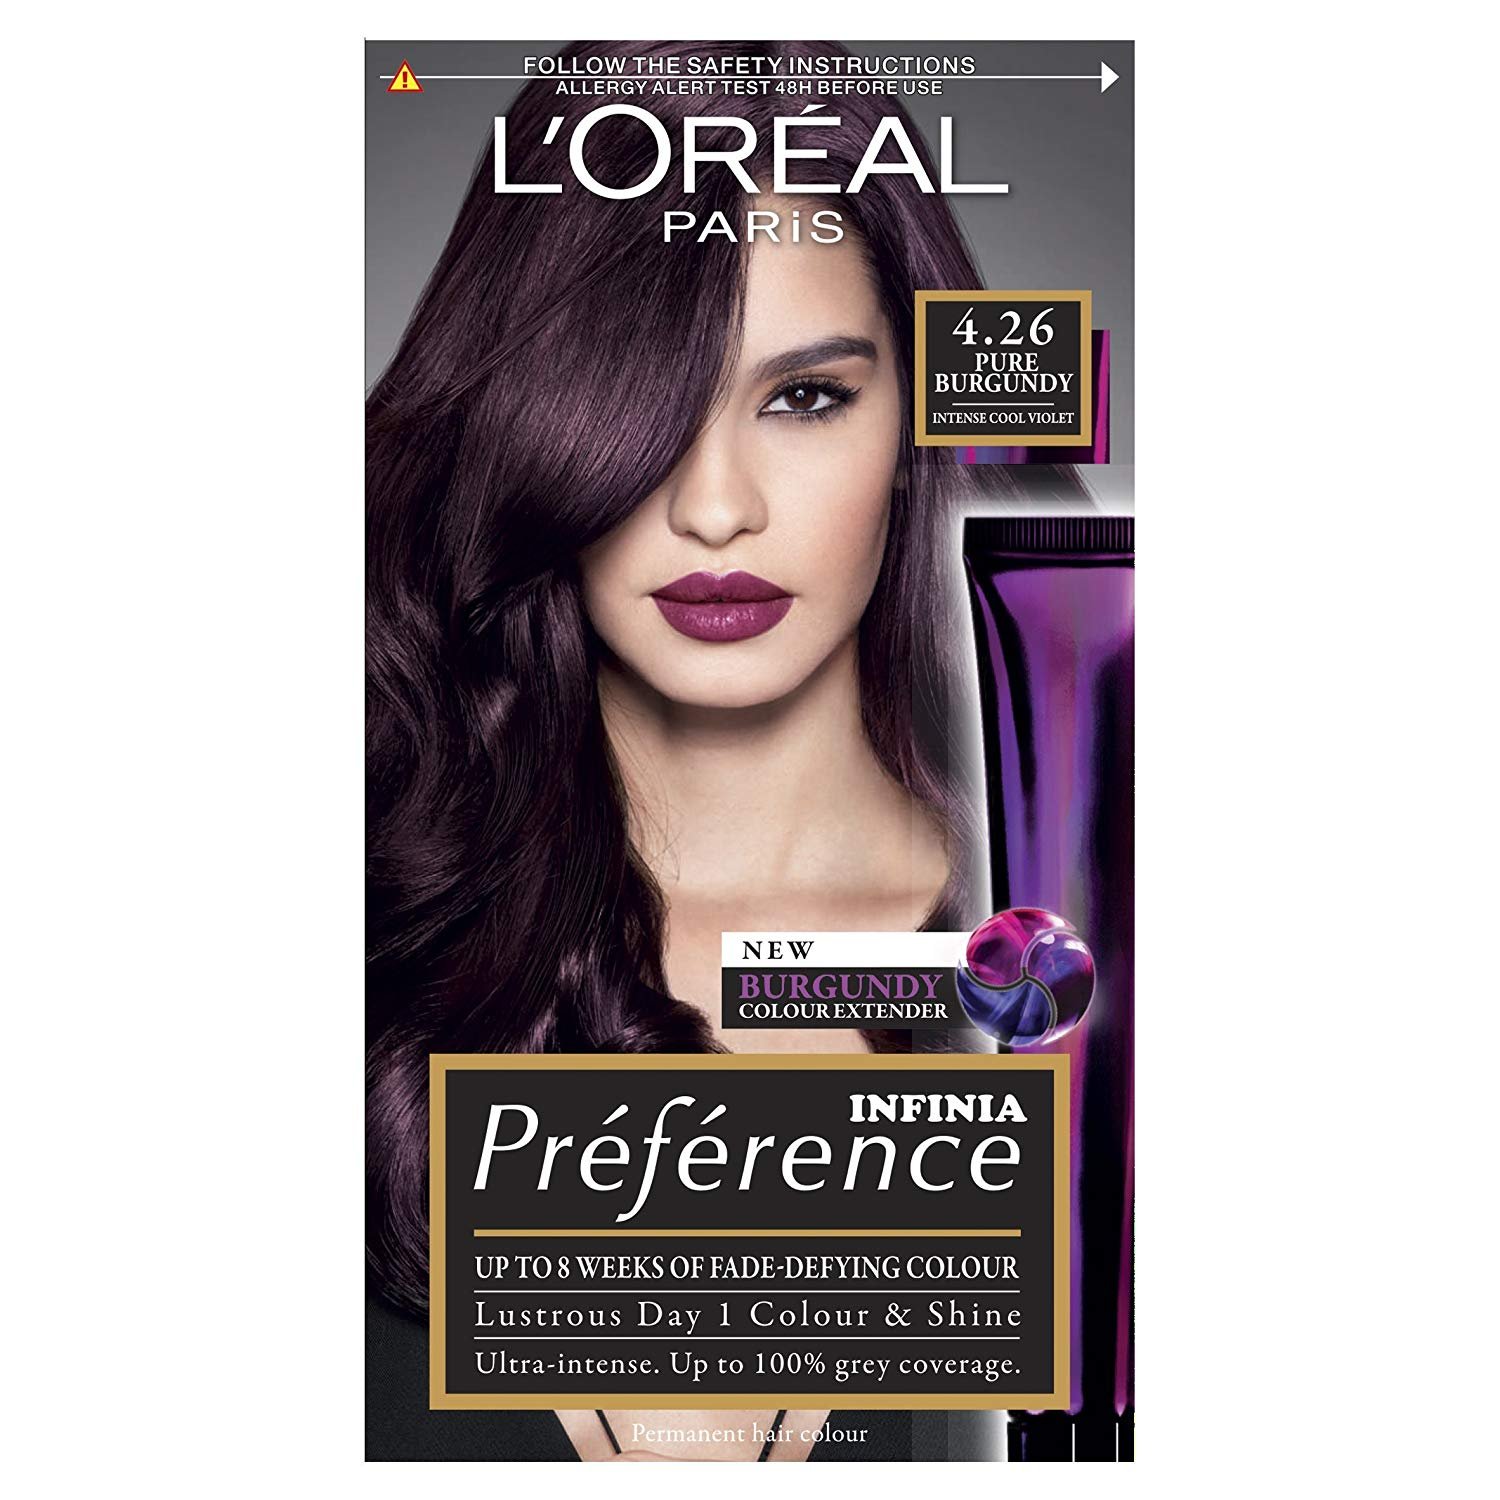 Loral Preference Infinia 426 Pure Burgundy Hair Dye Home